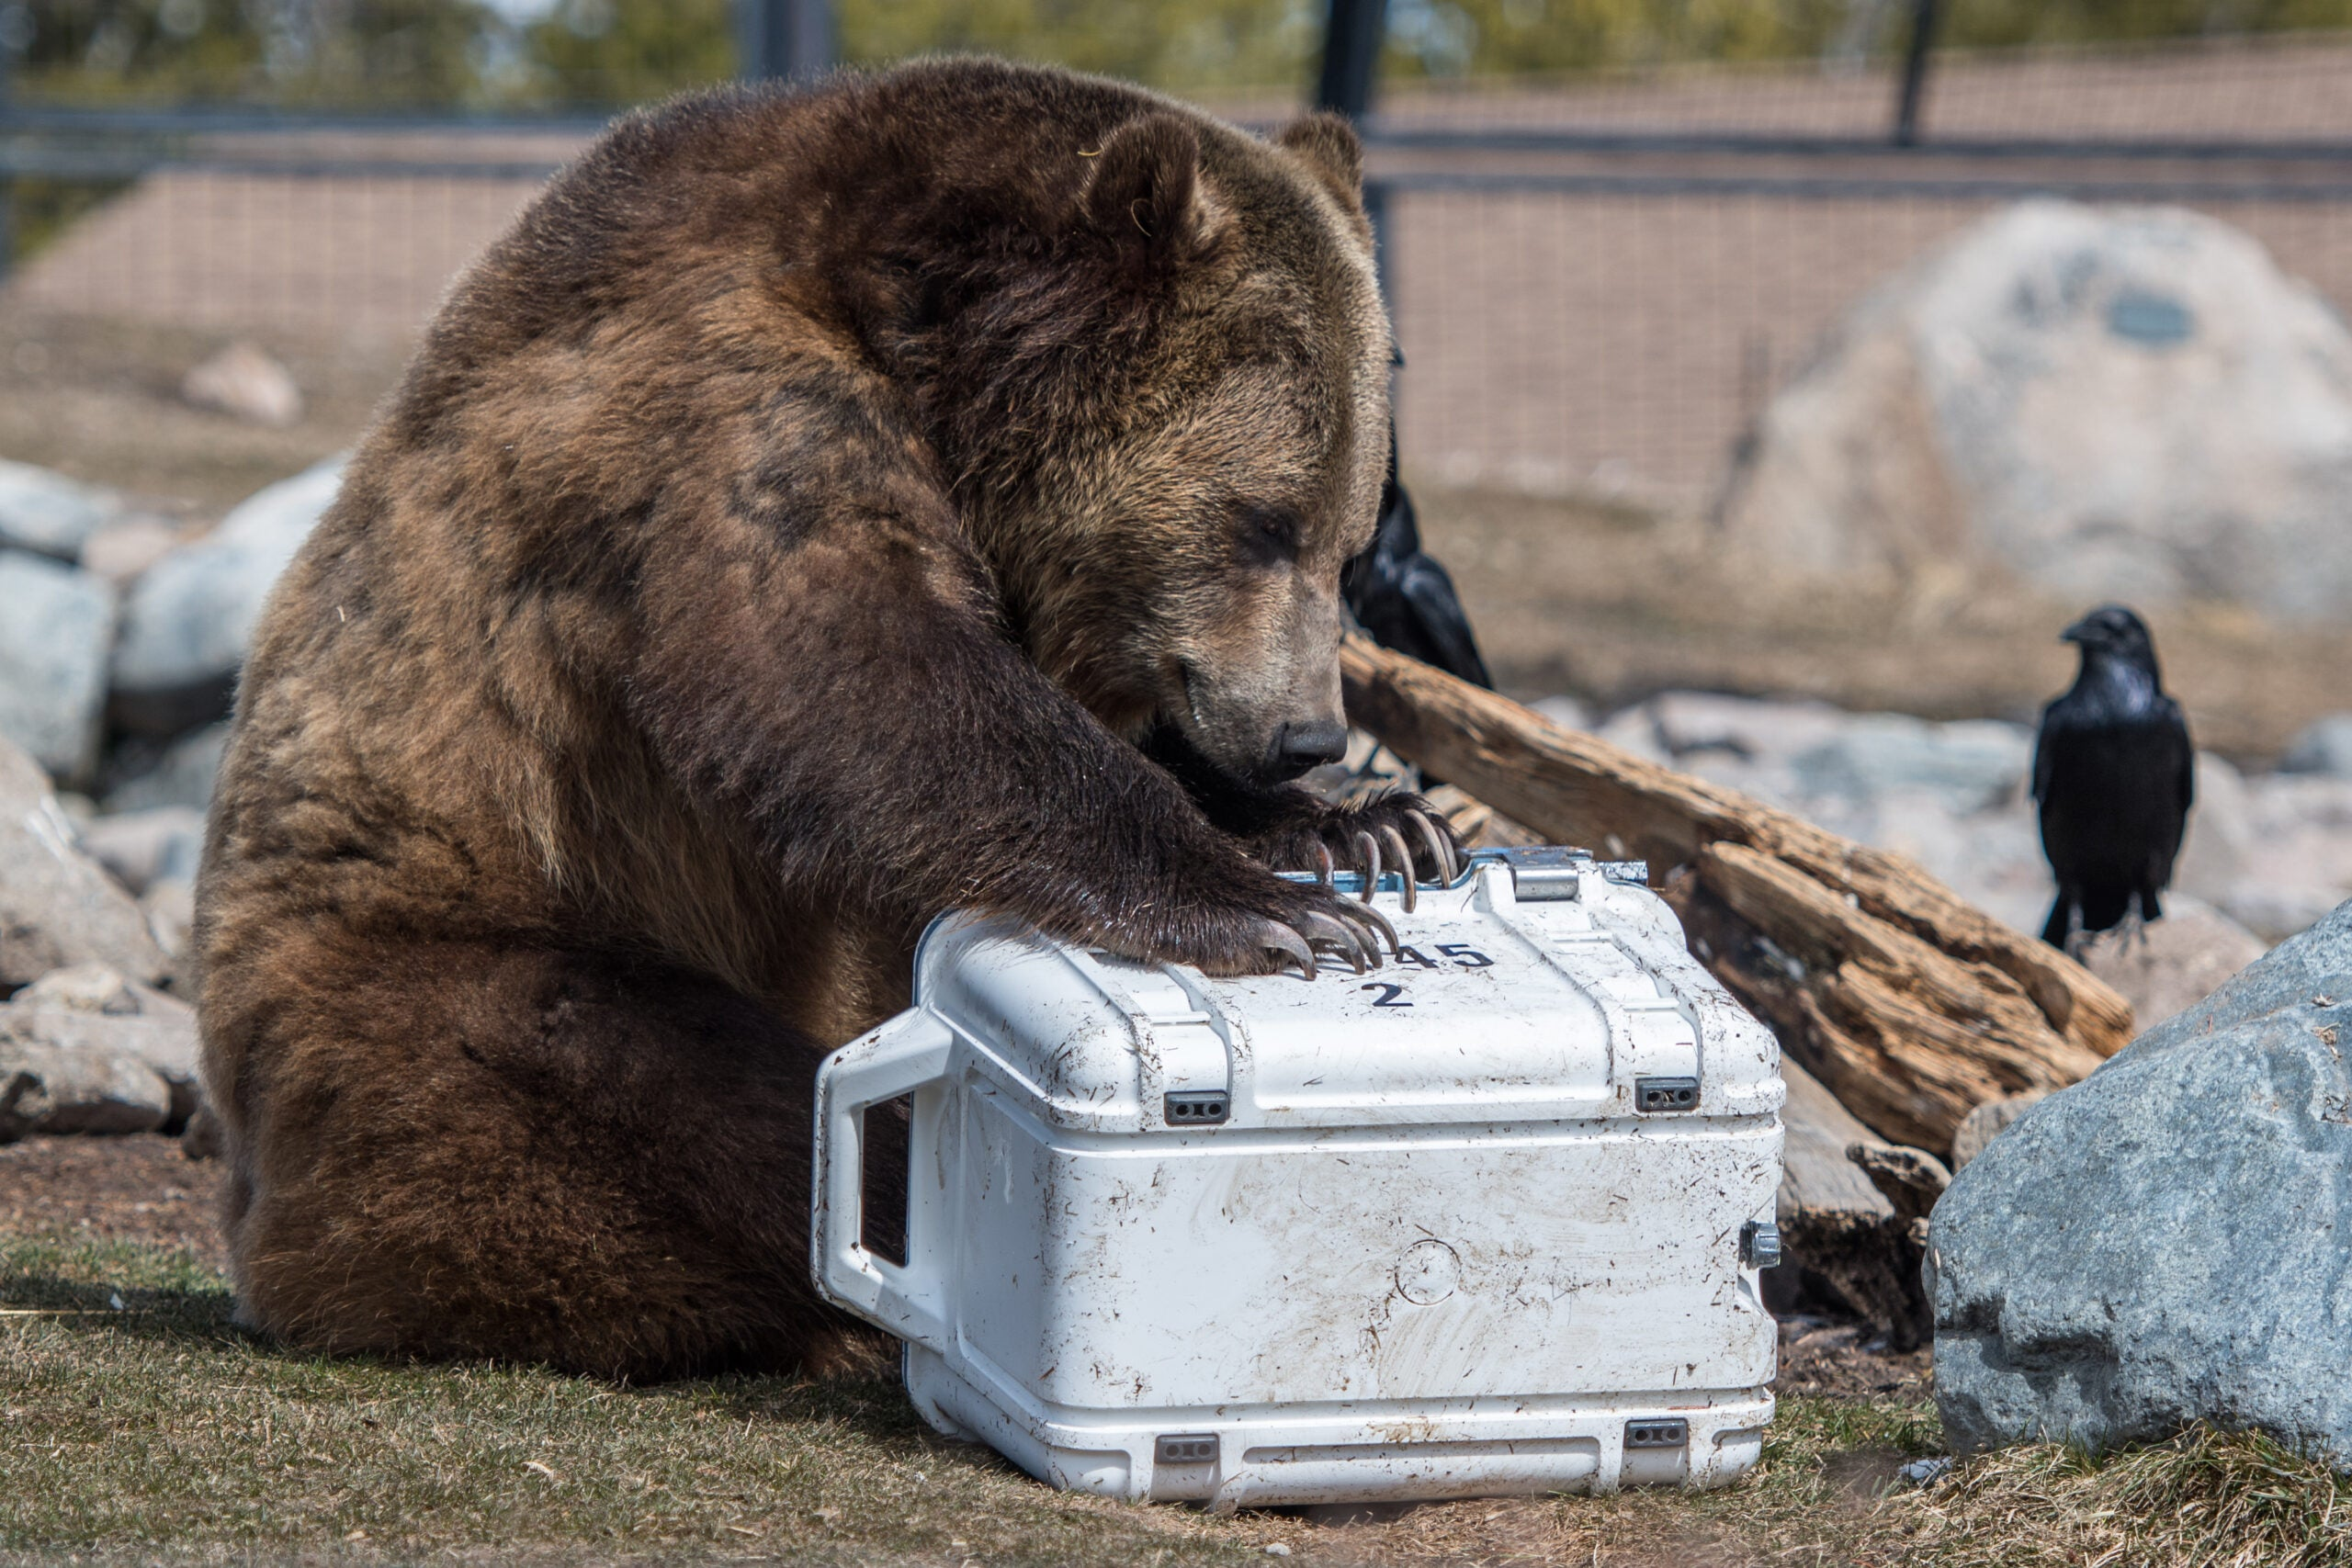 The week in tech: tunnels, coolers, and bears. Oh my.